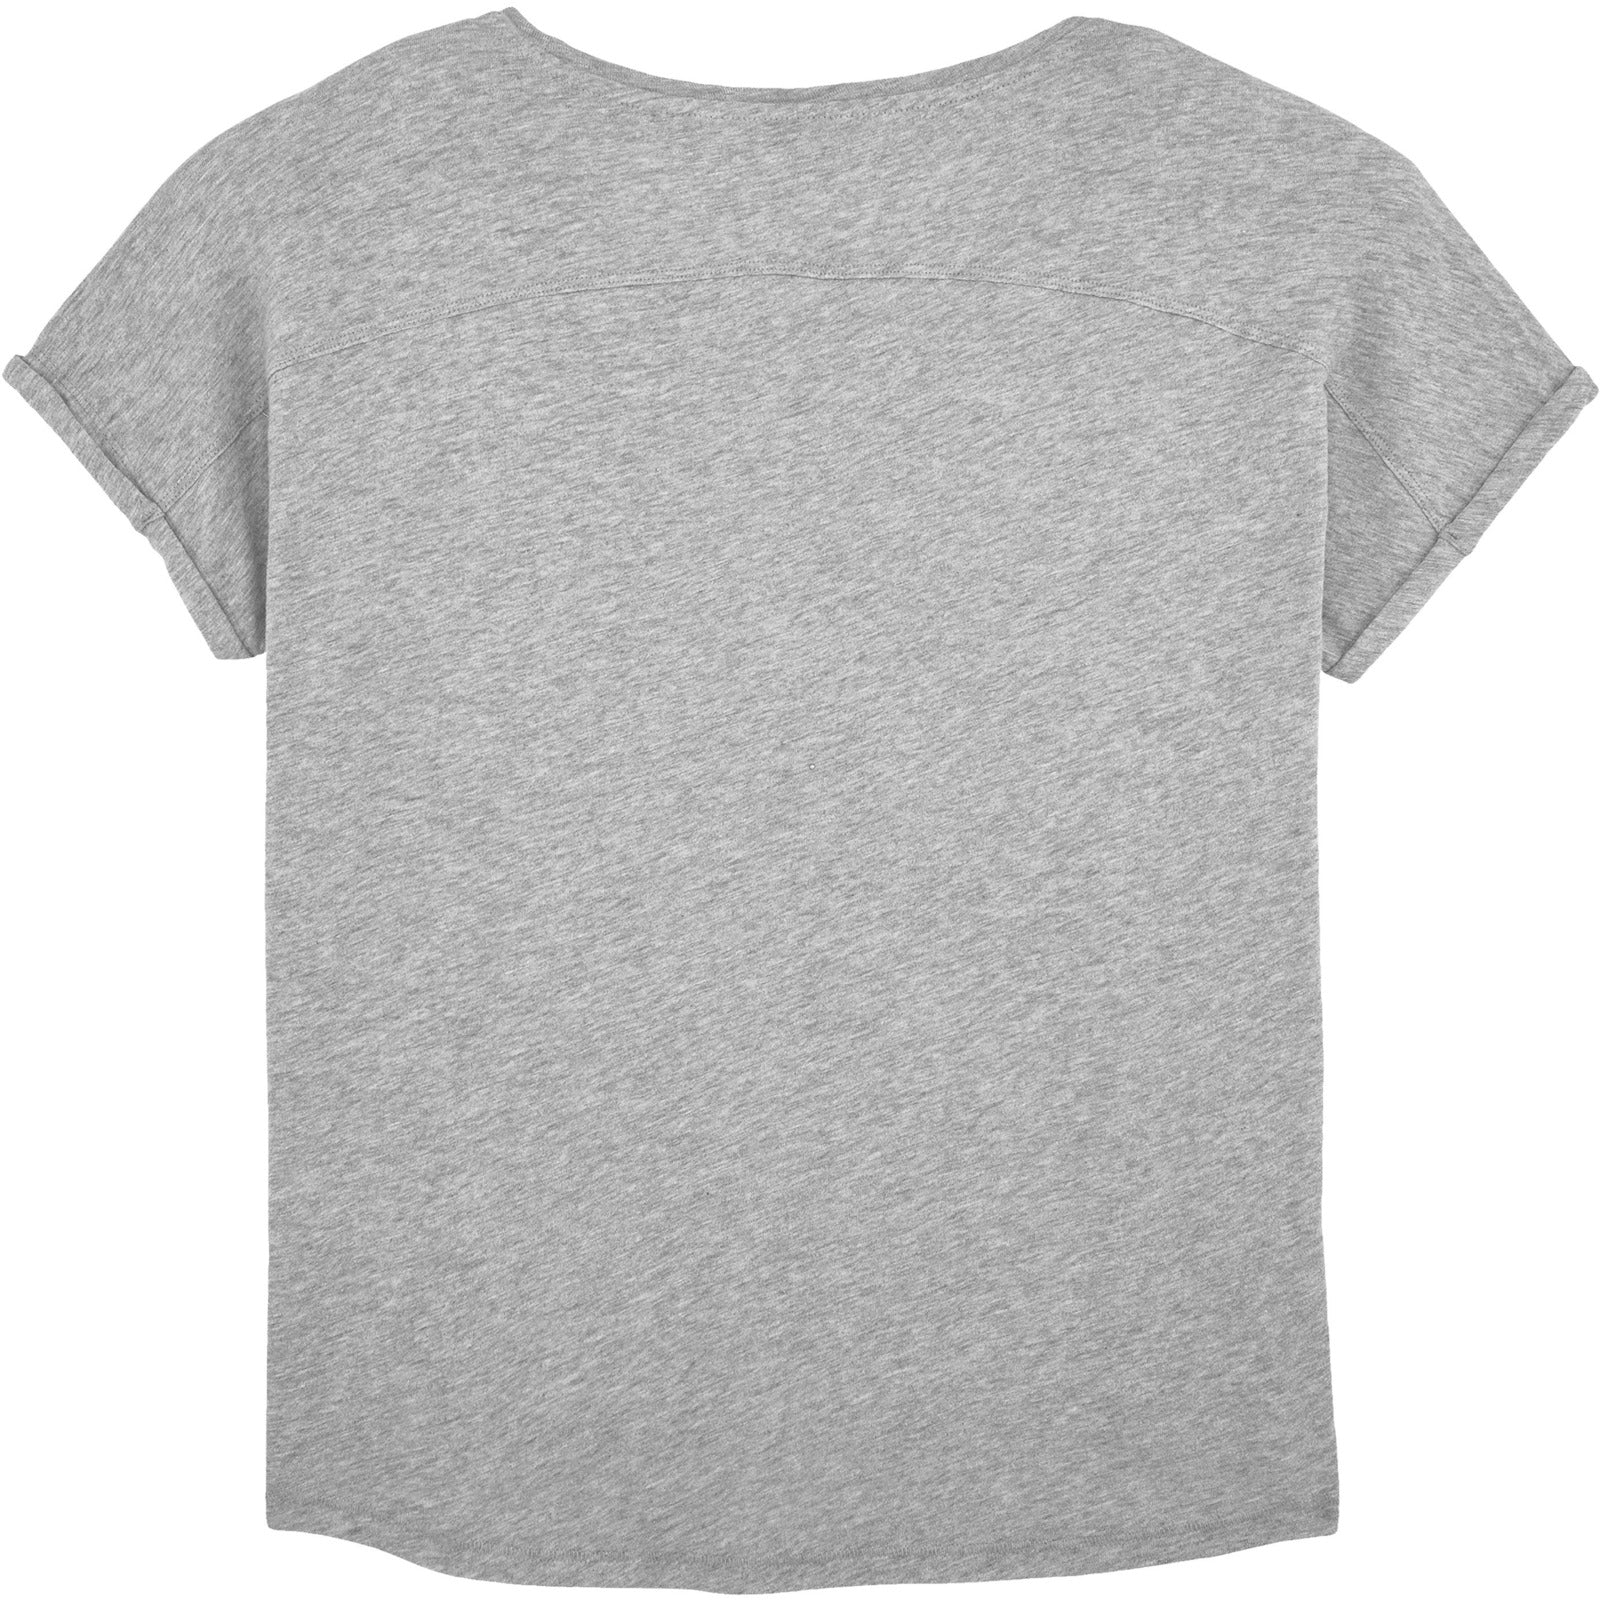 T-Shirt Relaxed Fit [GRAU]